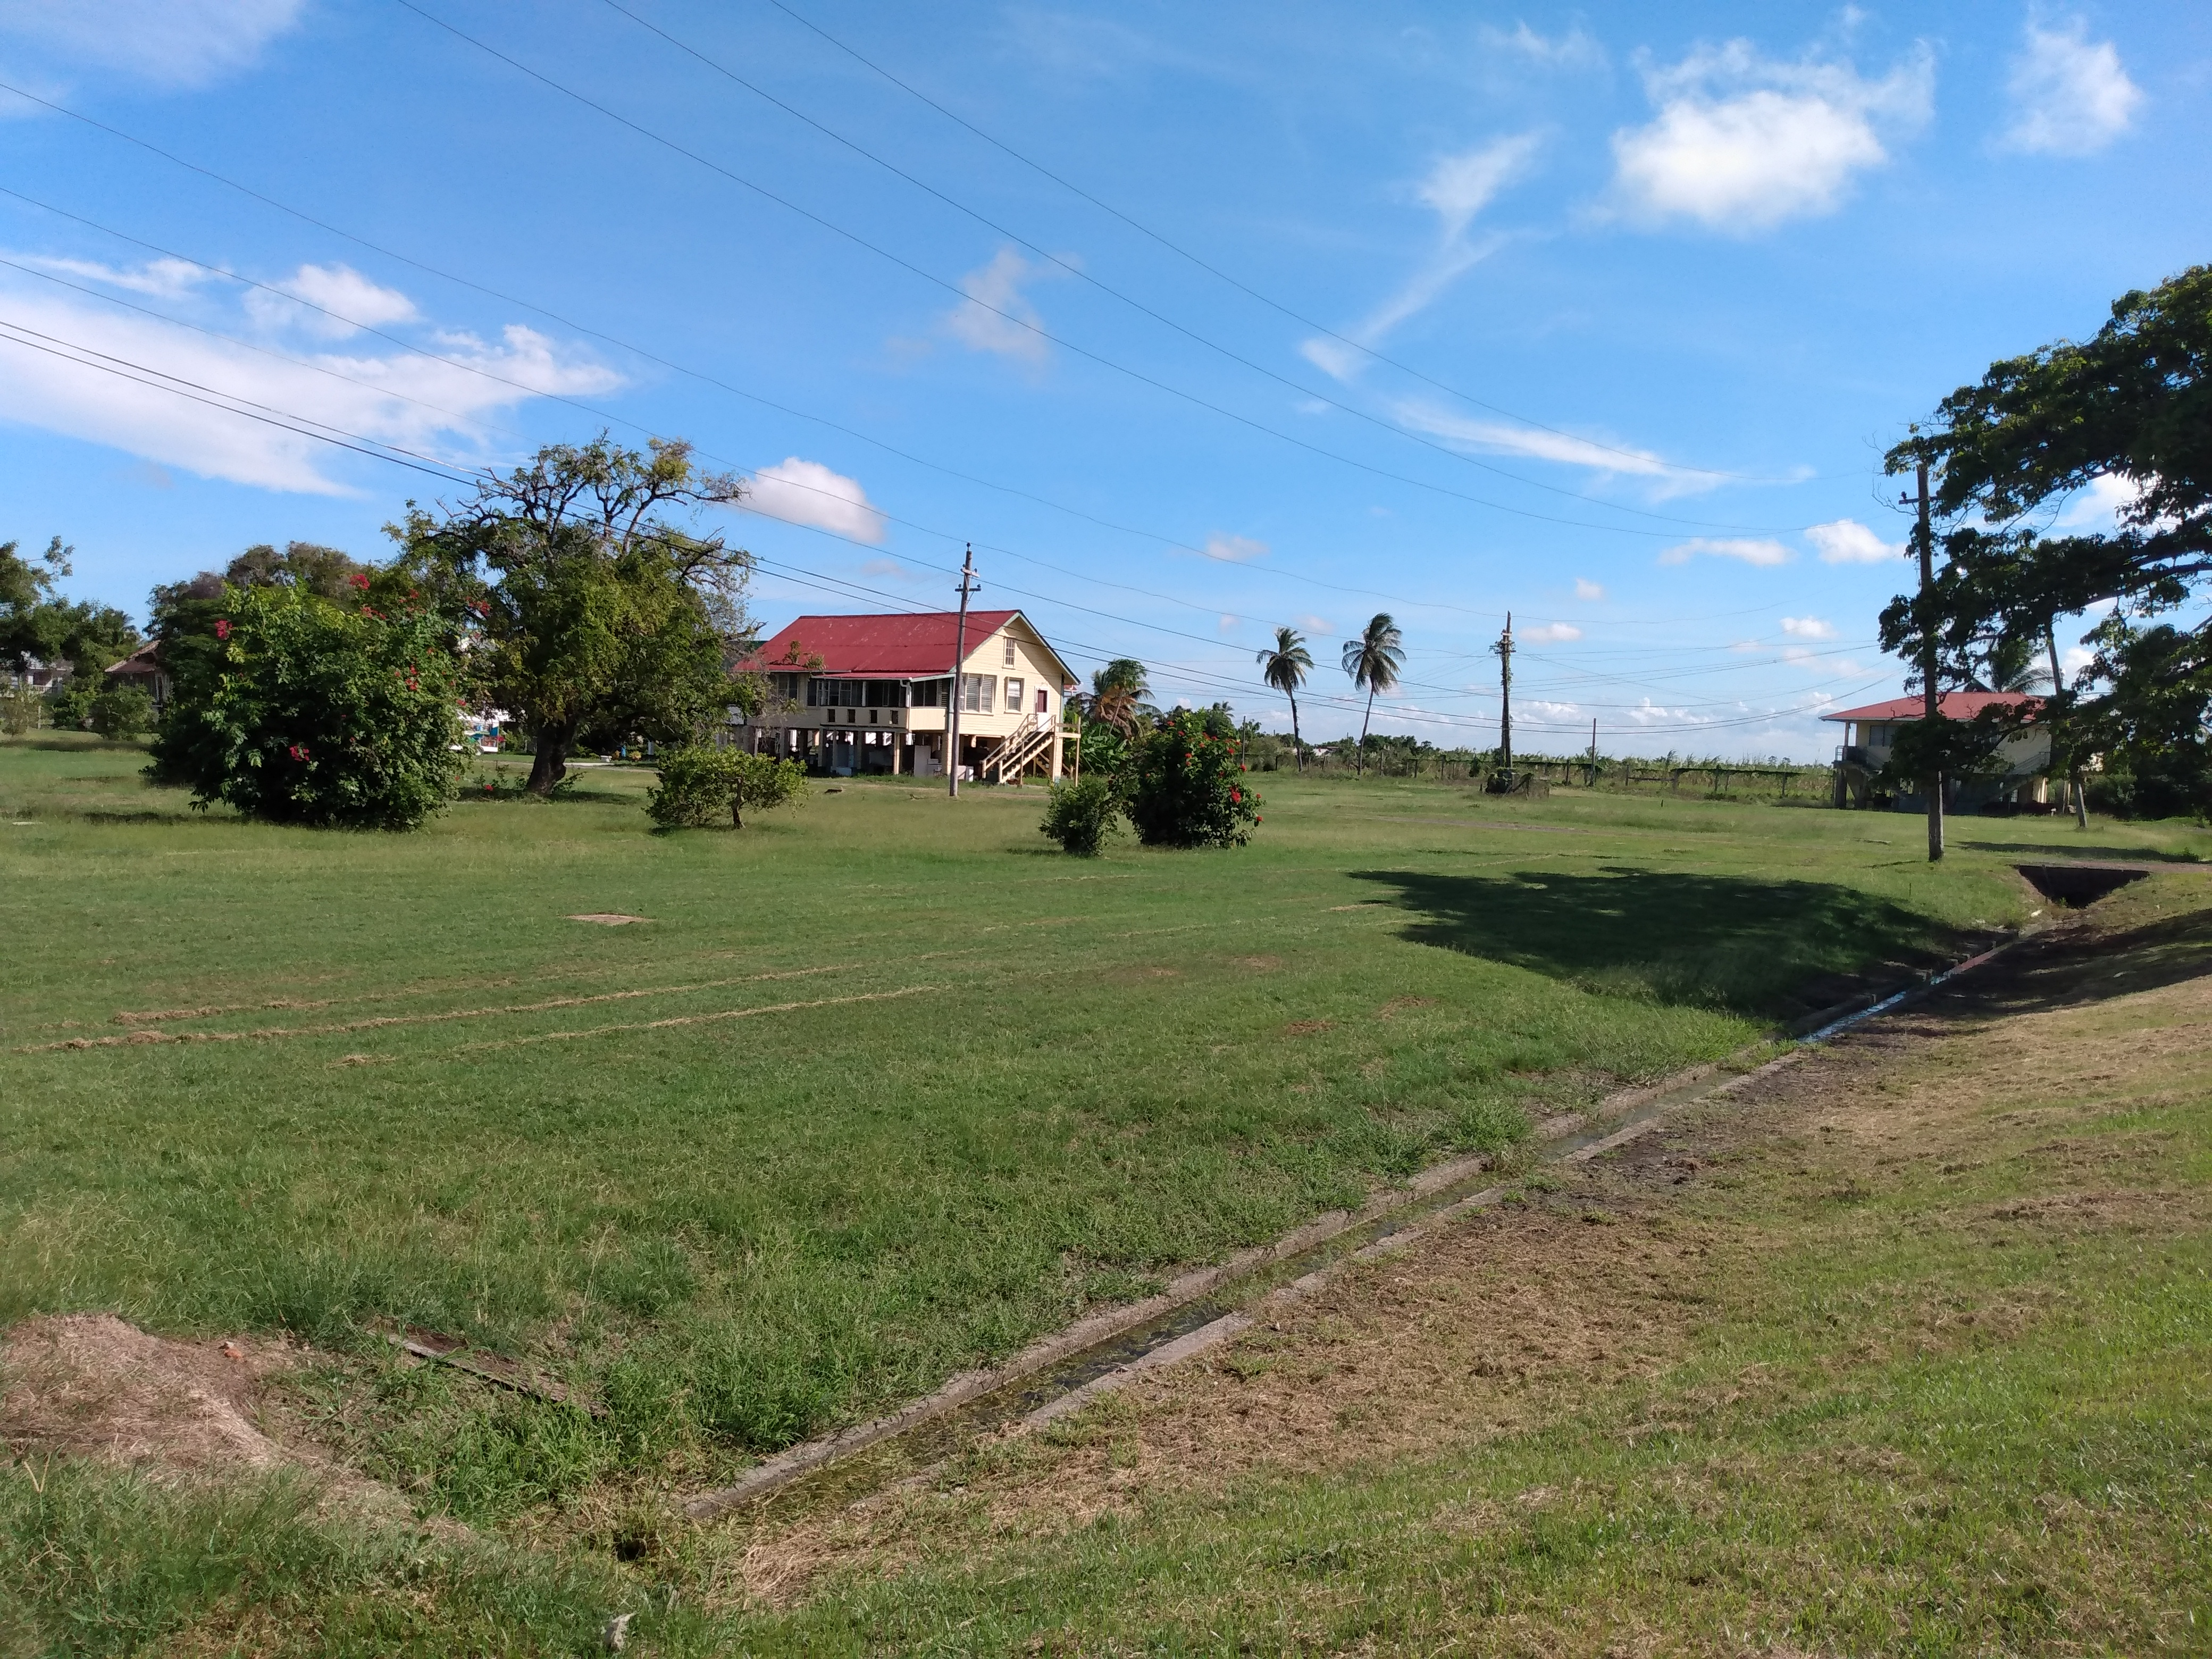 Large grass field with a building in the sunshine showing Enmore.